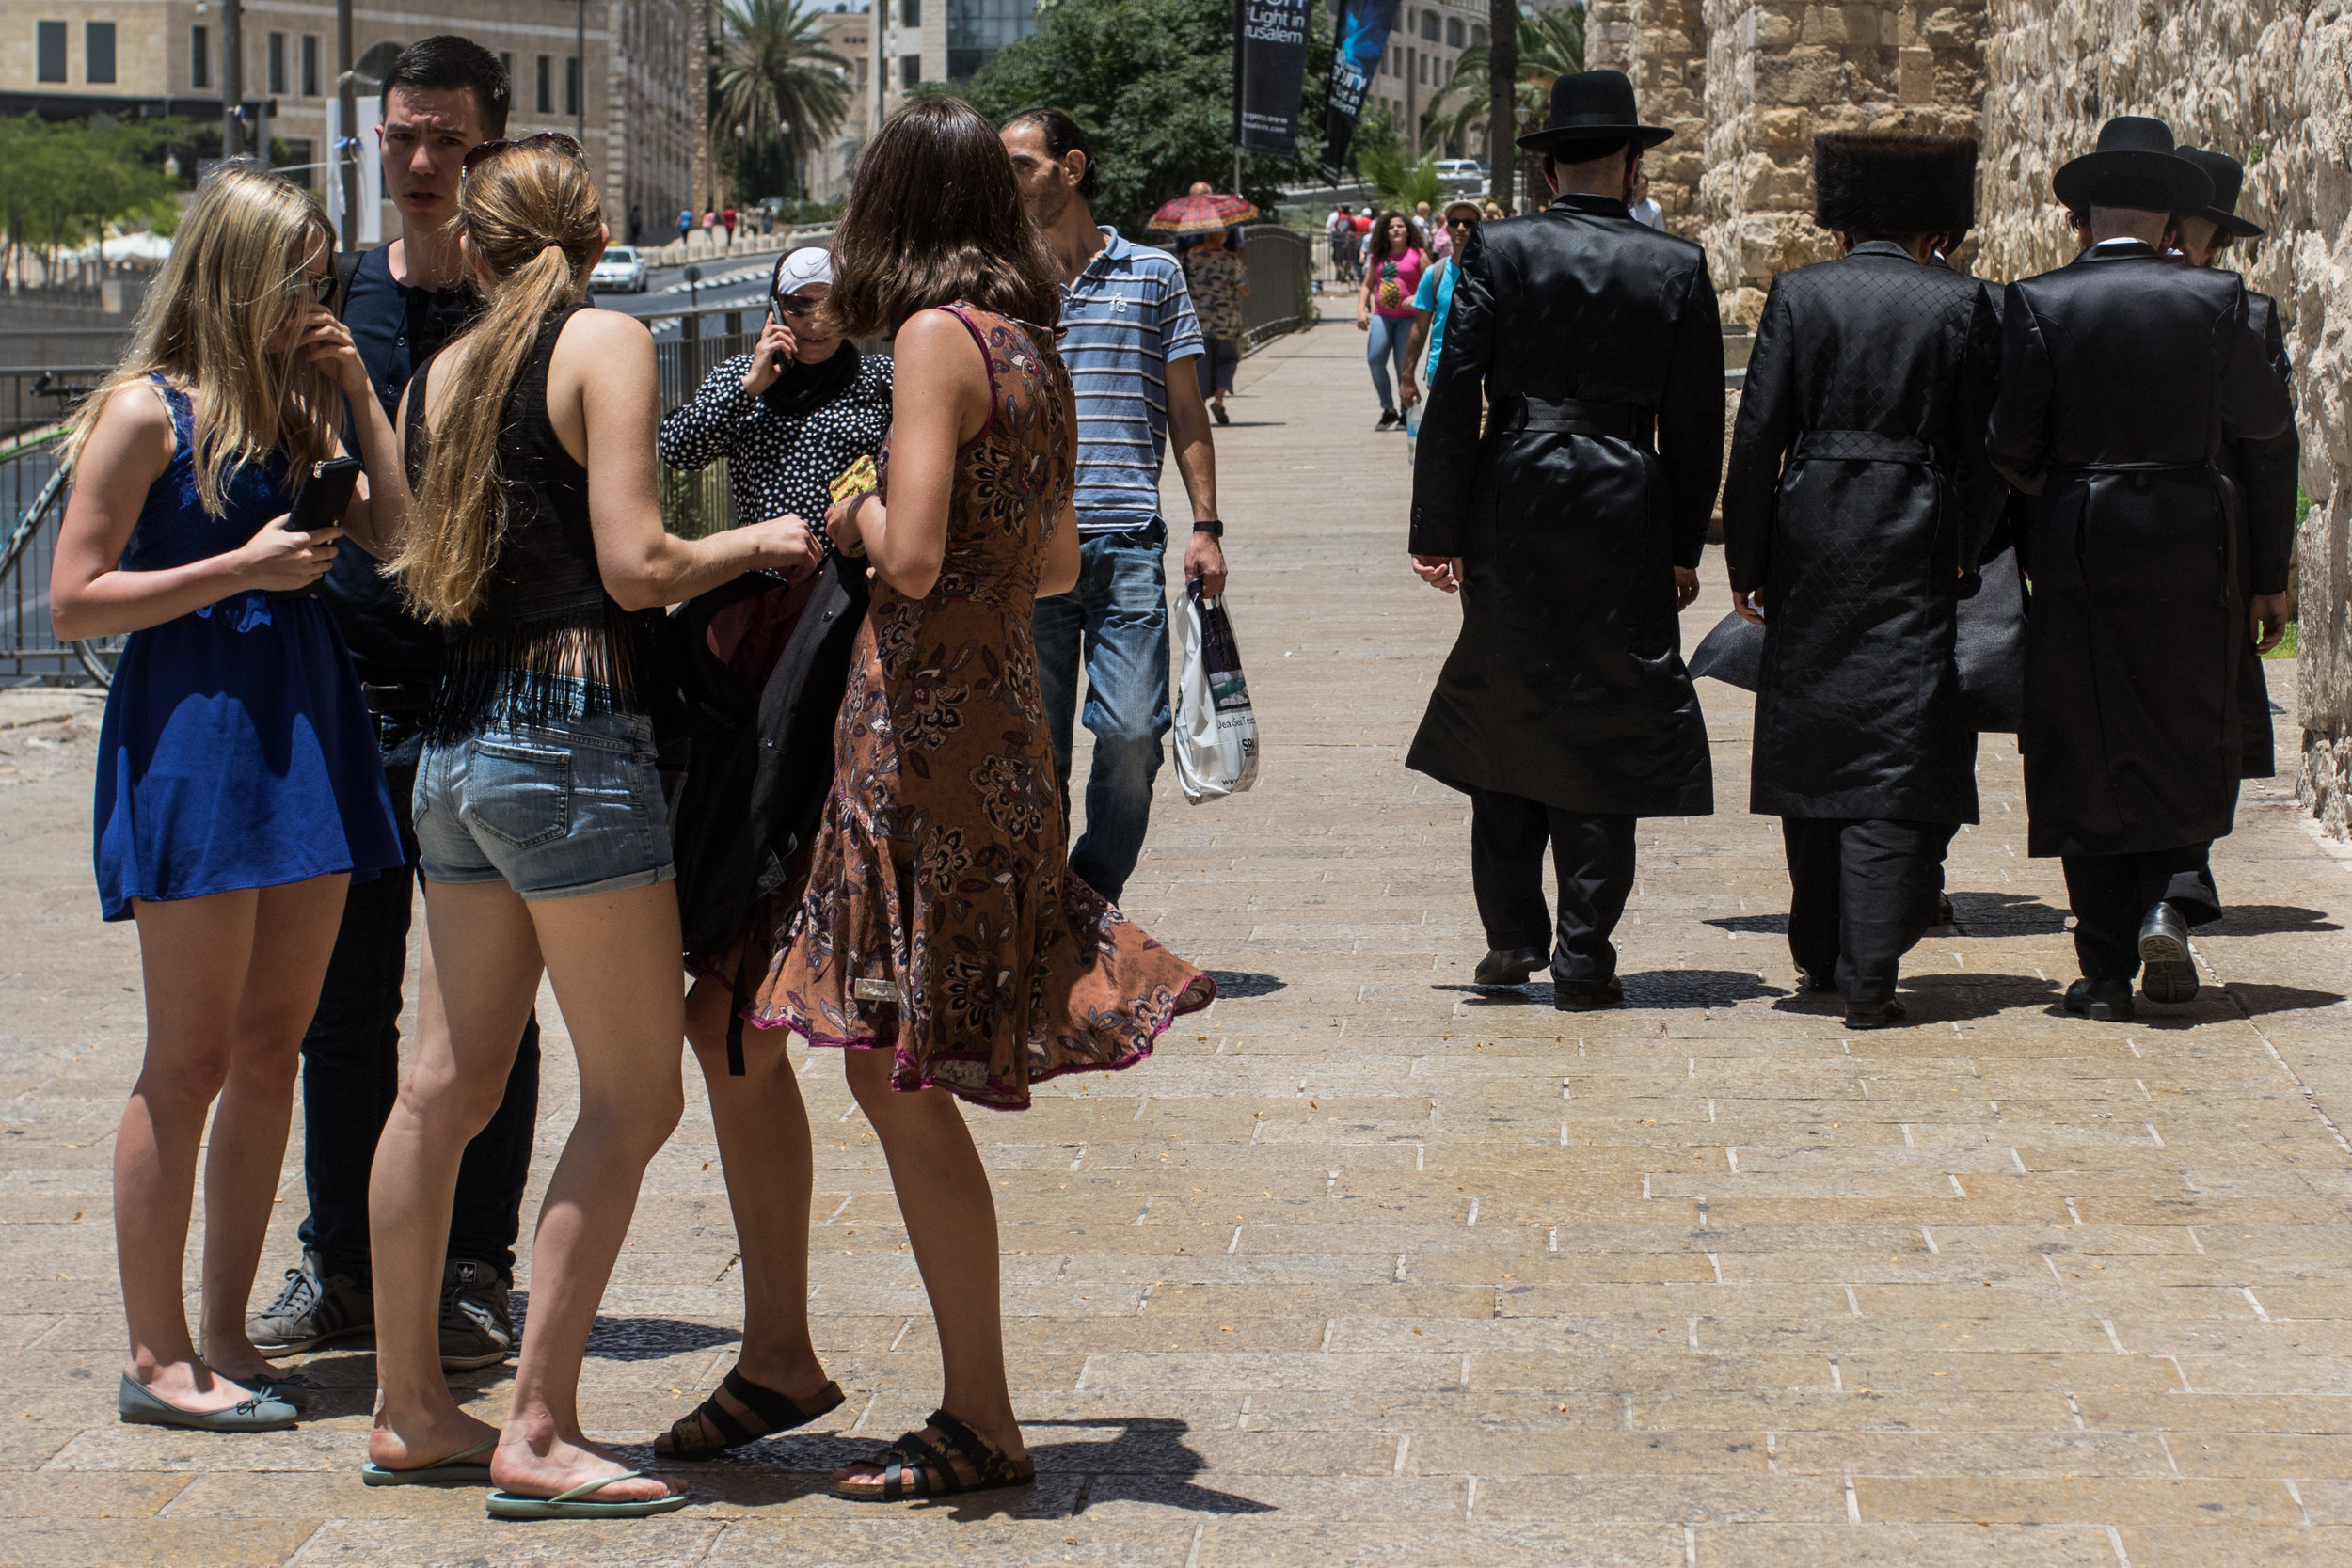 A group of Ultra-Orthodox Jewish men pass by a group of tourists outside of the Jaffa gate, the main tourist entrance into the Old City, June 13, 2016.